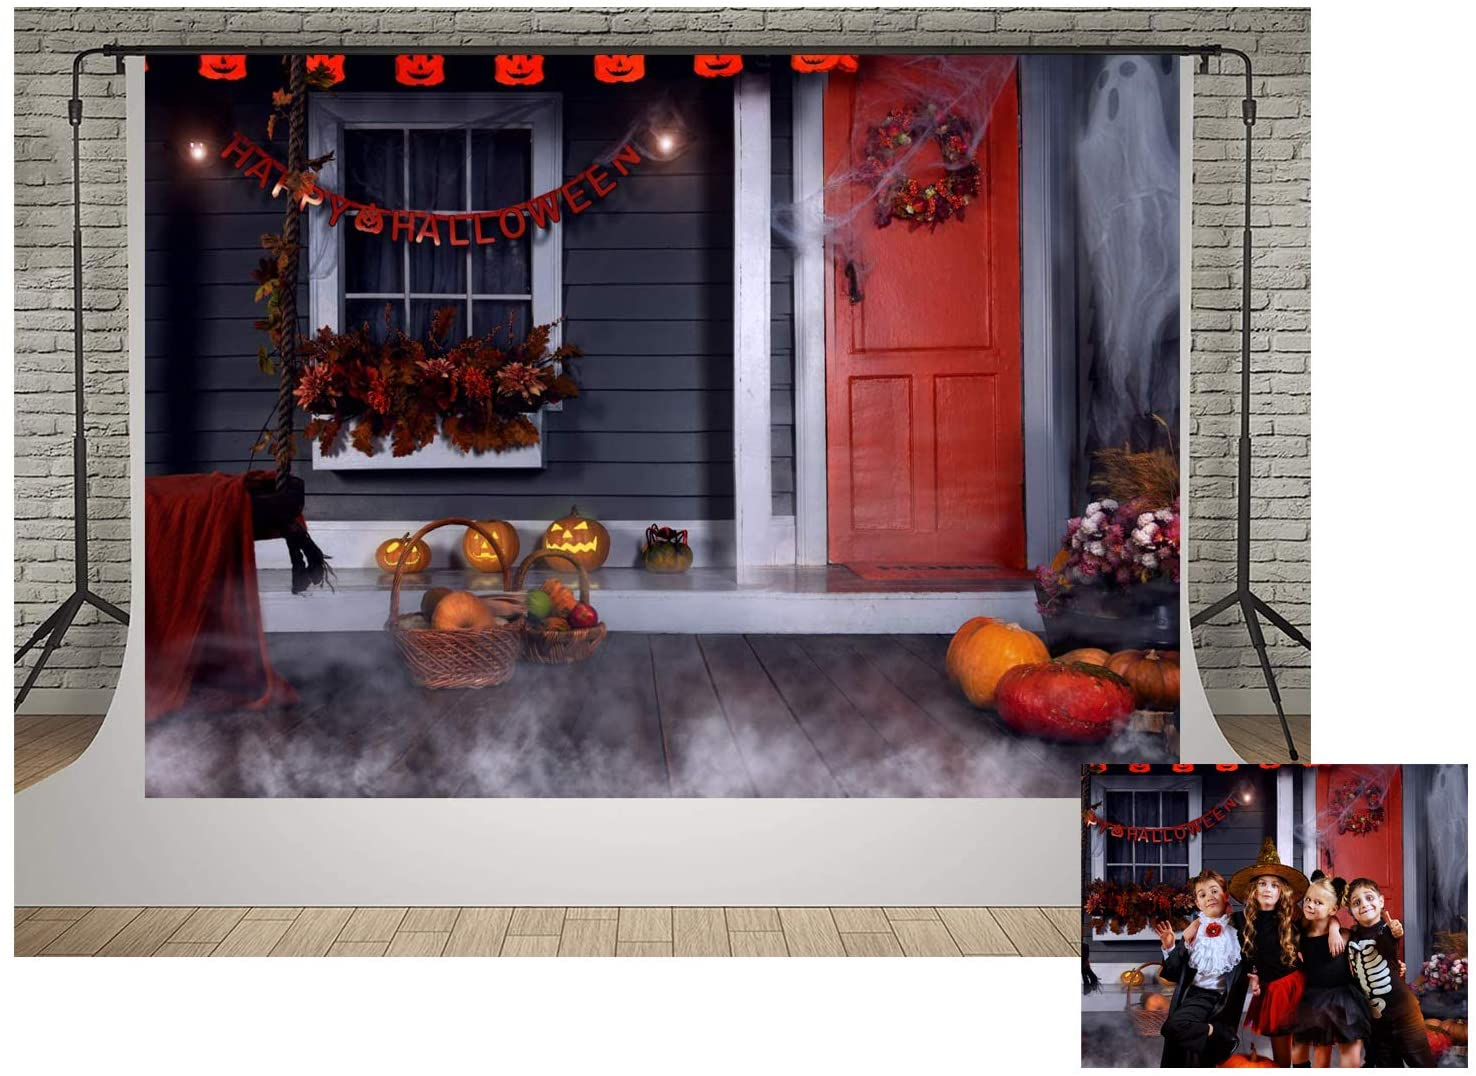 Kate Halloween Party House Window Decoration Photo Backgrounds 10x6.5ft Red Door Flowers and Pumpkim Wooden Floor Backdrops Photography Halloween Night Smoke Backdrop Video